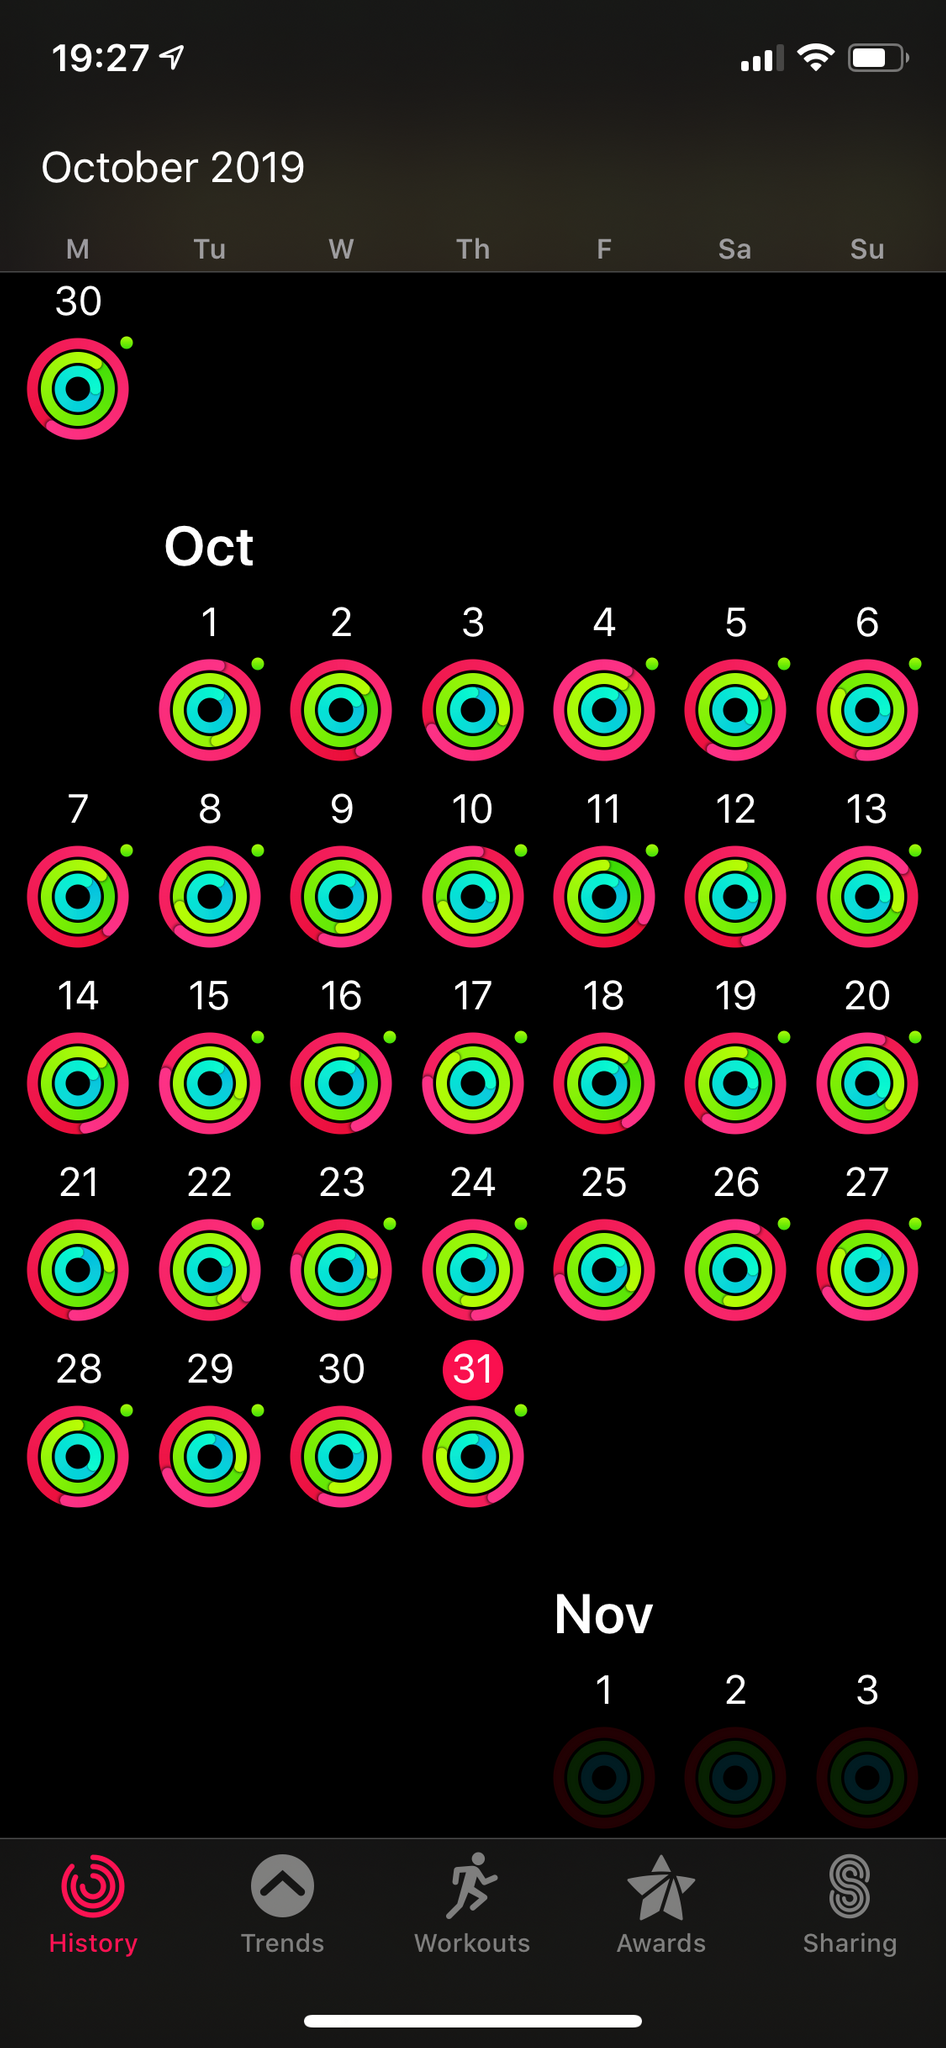 A screenshot from the iOS Activity app that's used with the Apple Watch showing October with the Move, Exercise, and Stand rings closed every single day for the whole month.